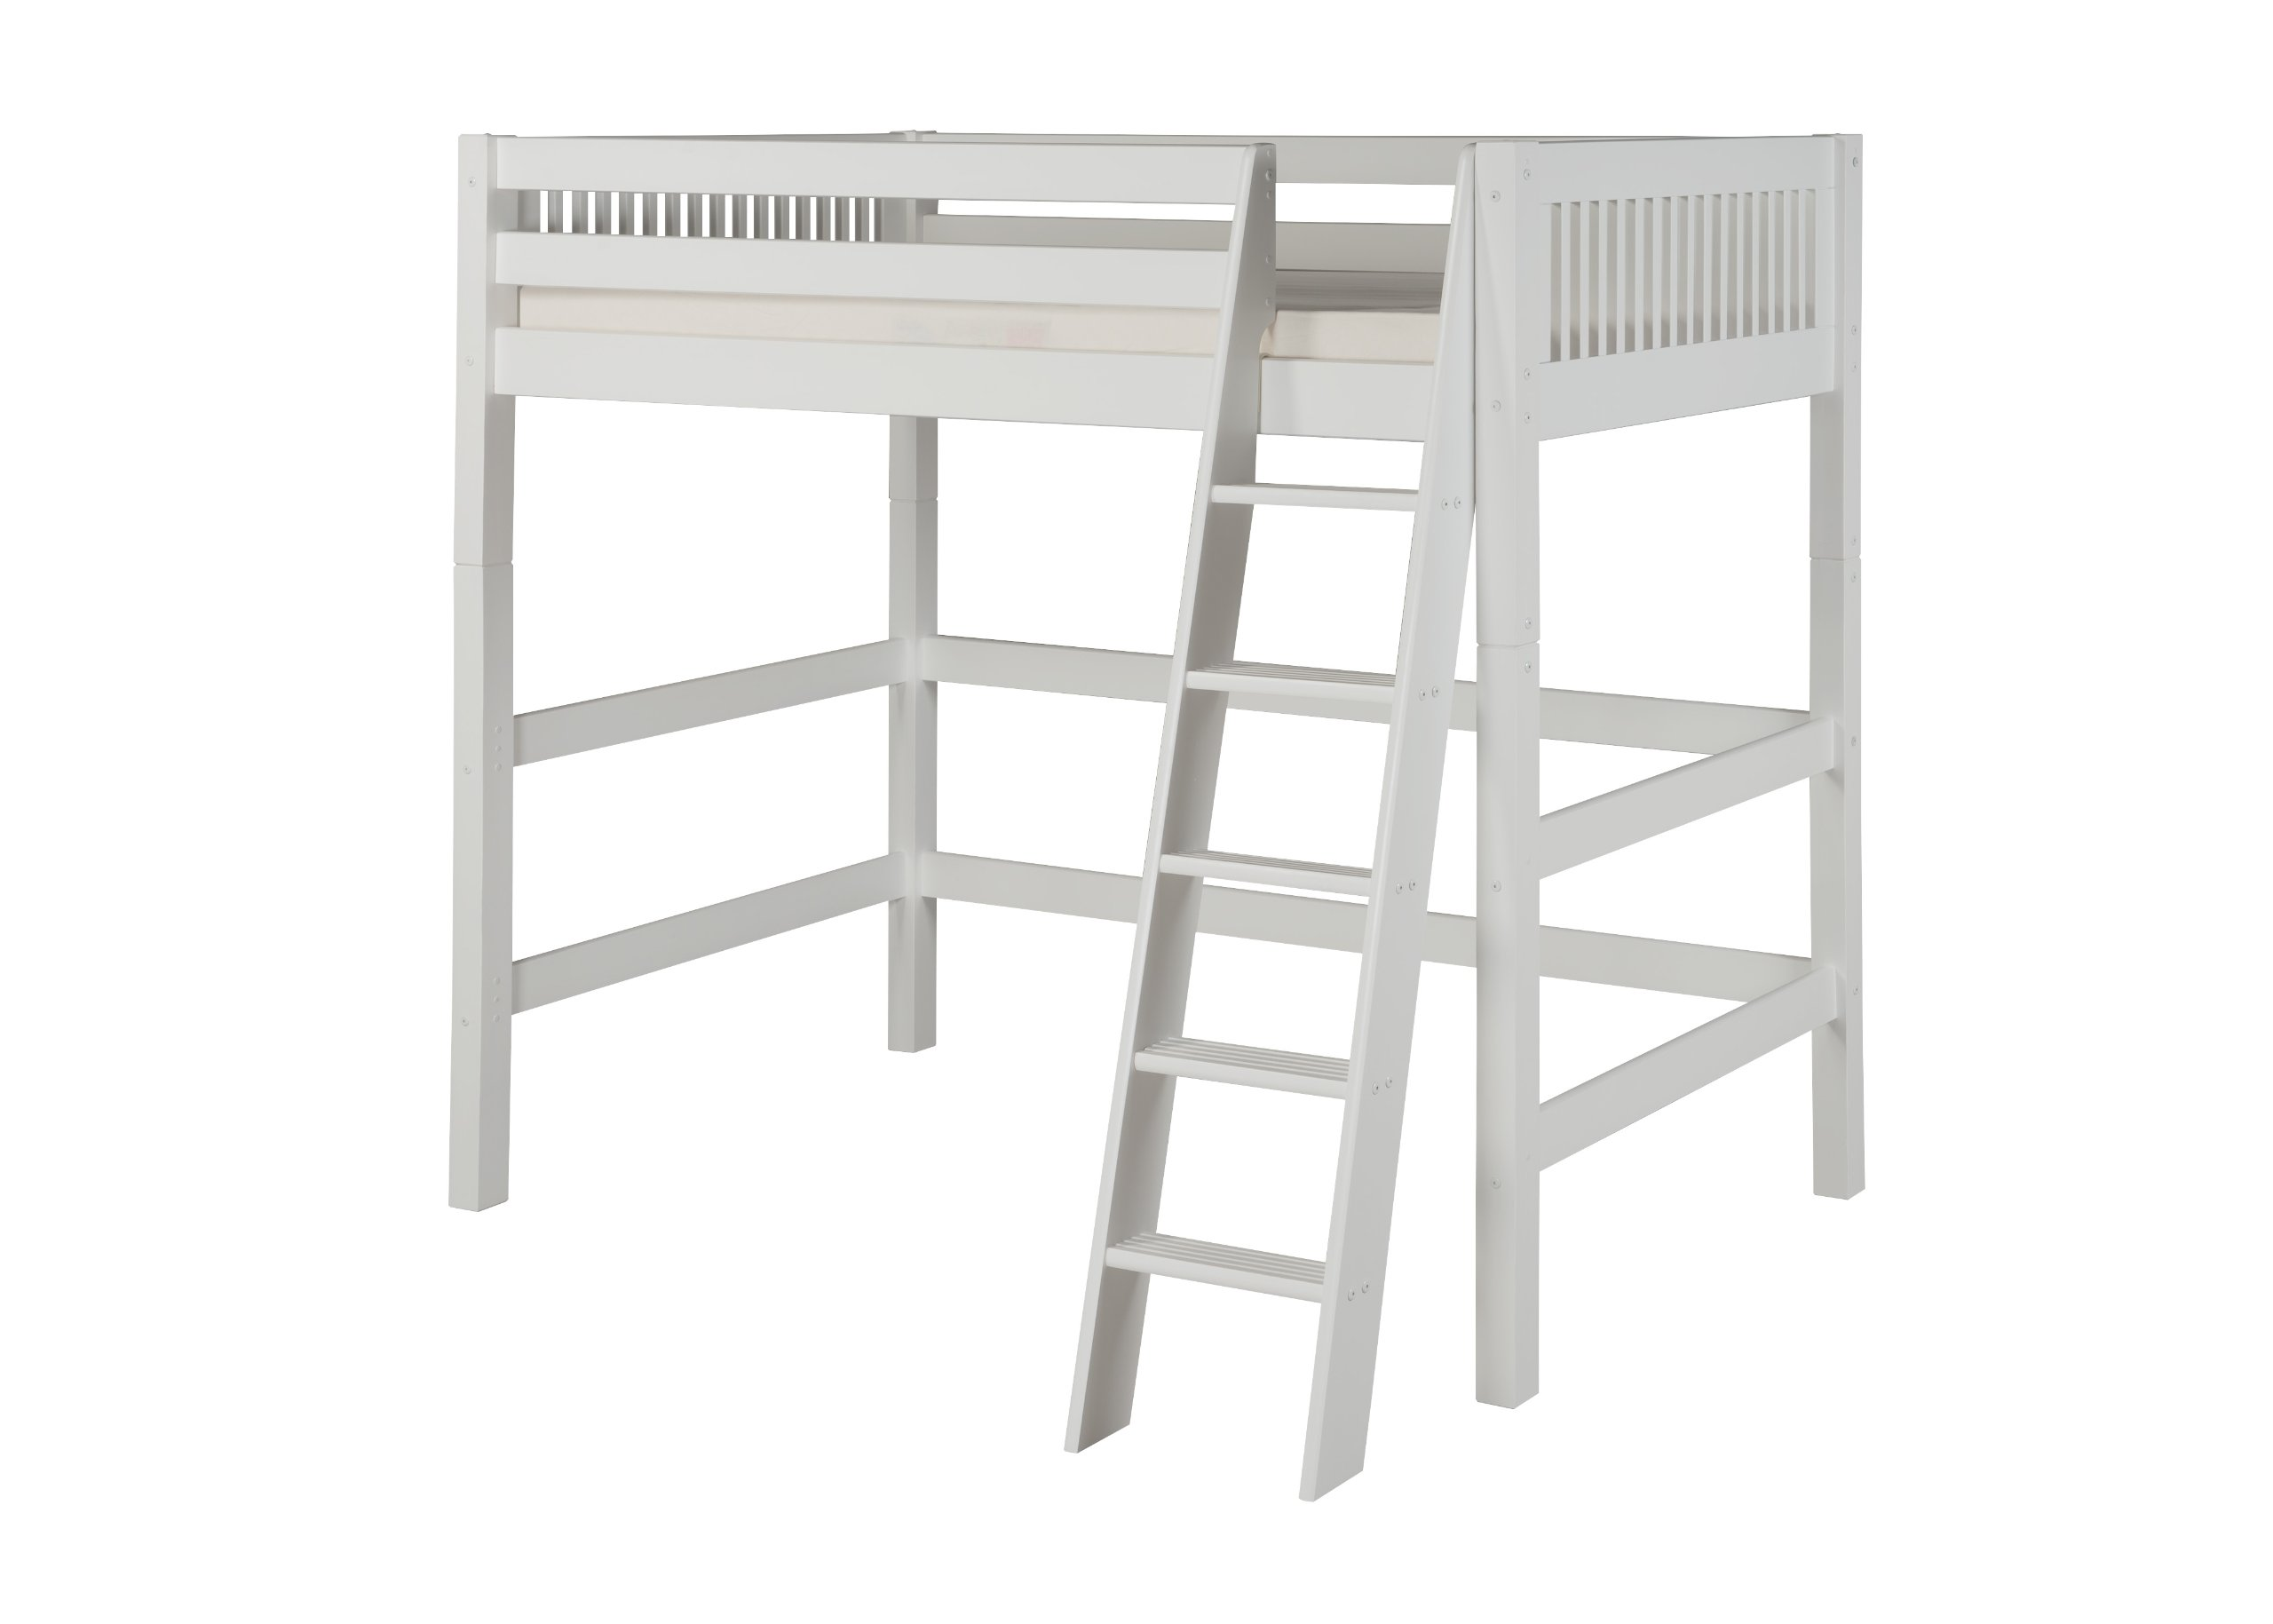 Camaflexi Mission Style Solid Wood High Loft Bed, Twin, Side Angled Ladder, White by Camaflexi